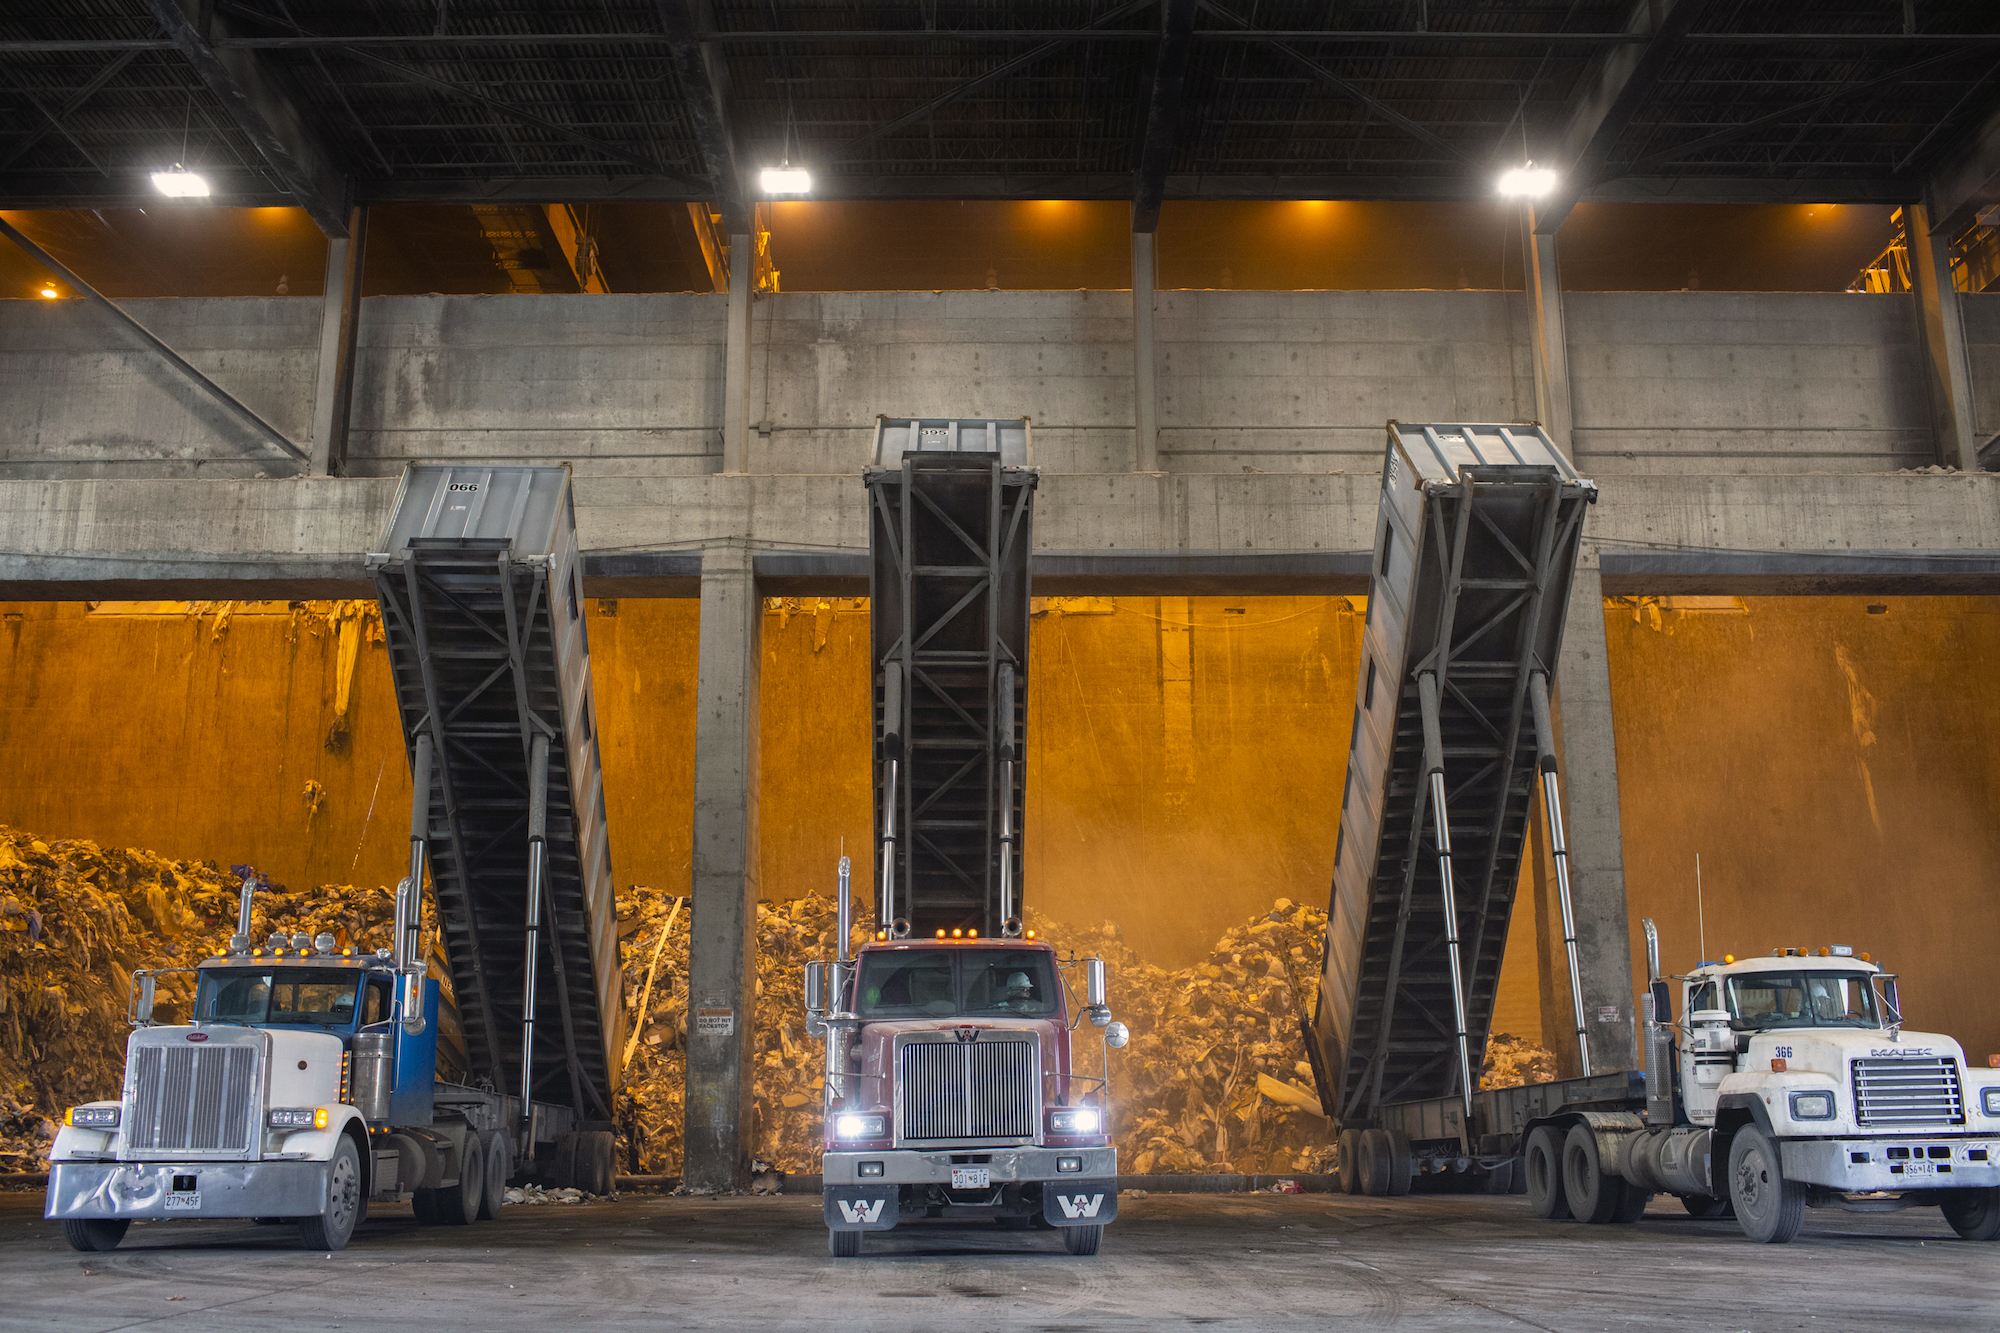 A photo of trucks dumping garbage at the Covanta incinerator in Montgomery County, Maryland